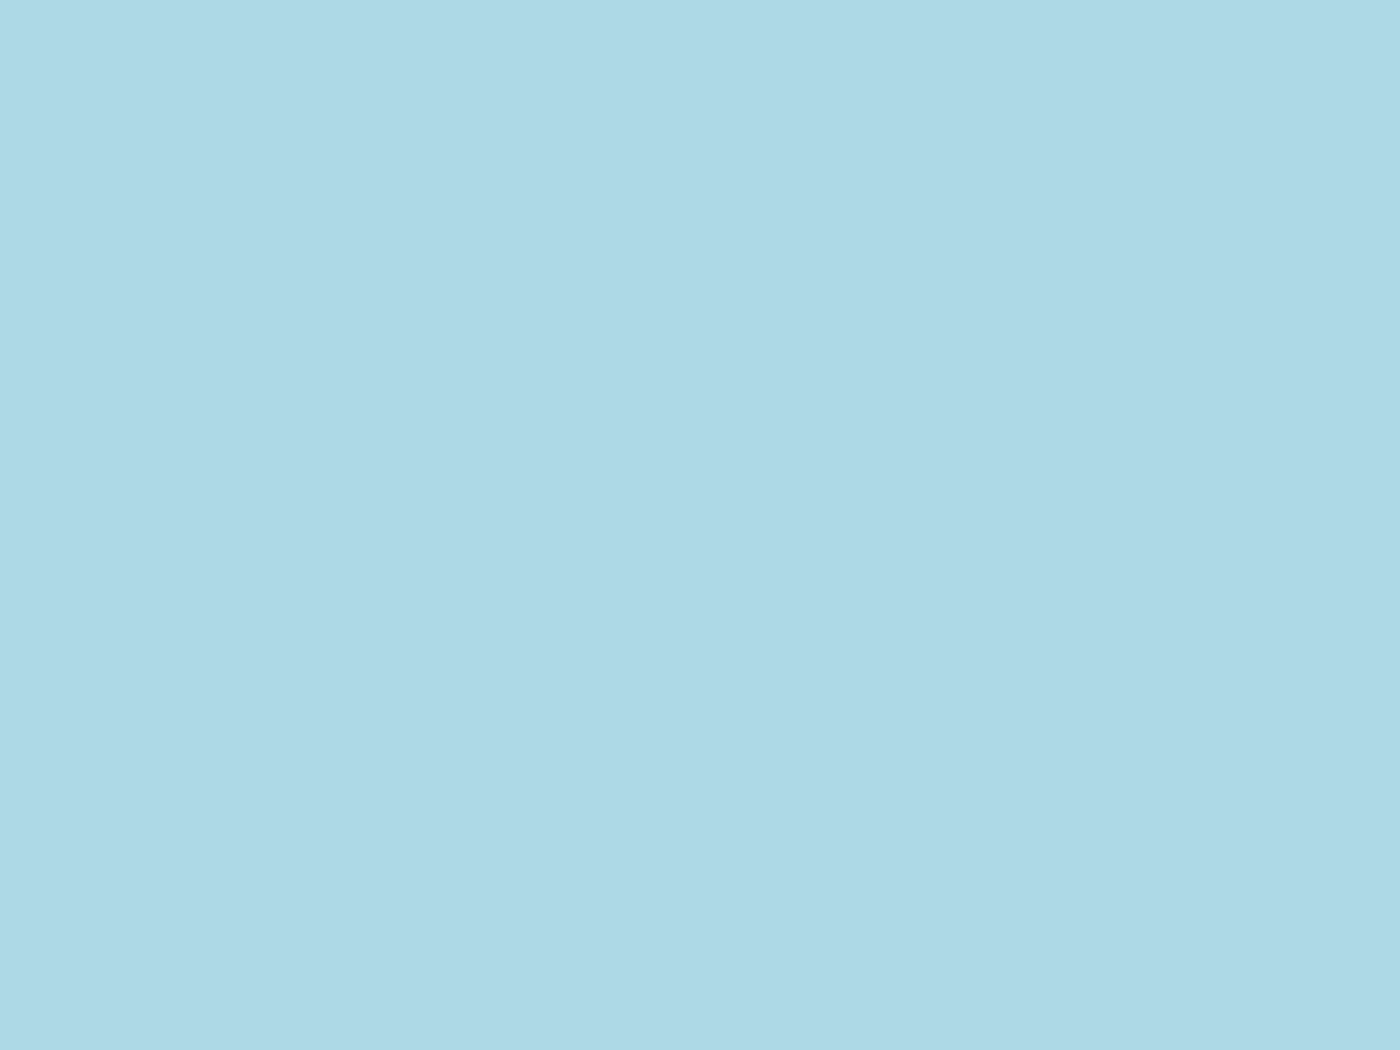 1400x1050 Light Blue Solid Color Background